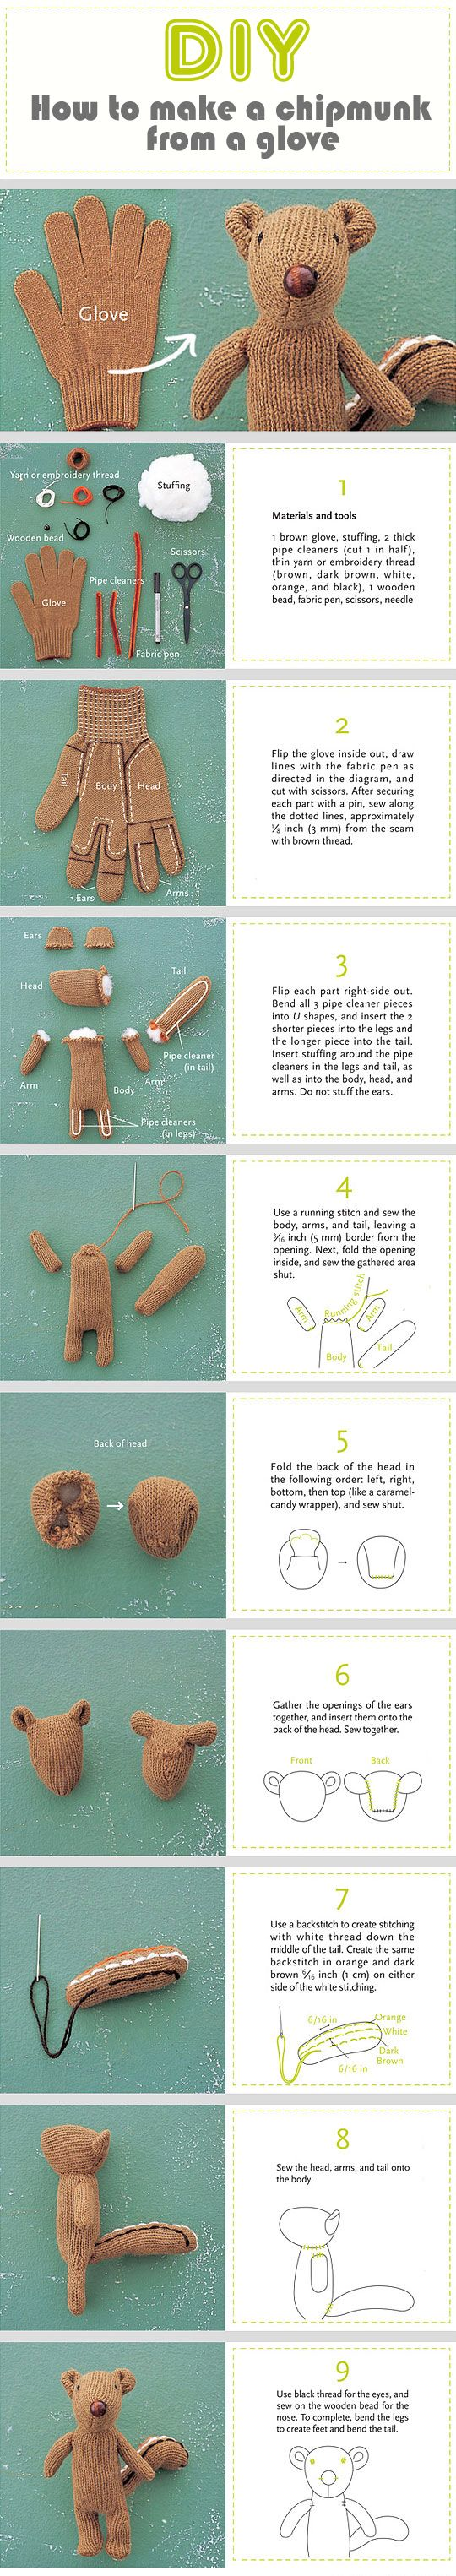 DIY Chipmunk Pictures, Photos, and Images for Facebook, Tumblr, Pinterest, and Twitter